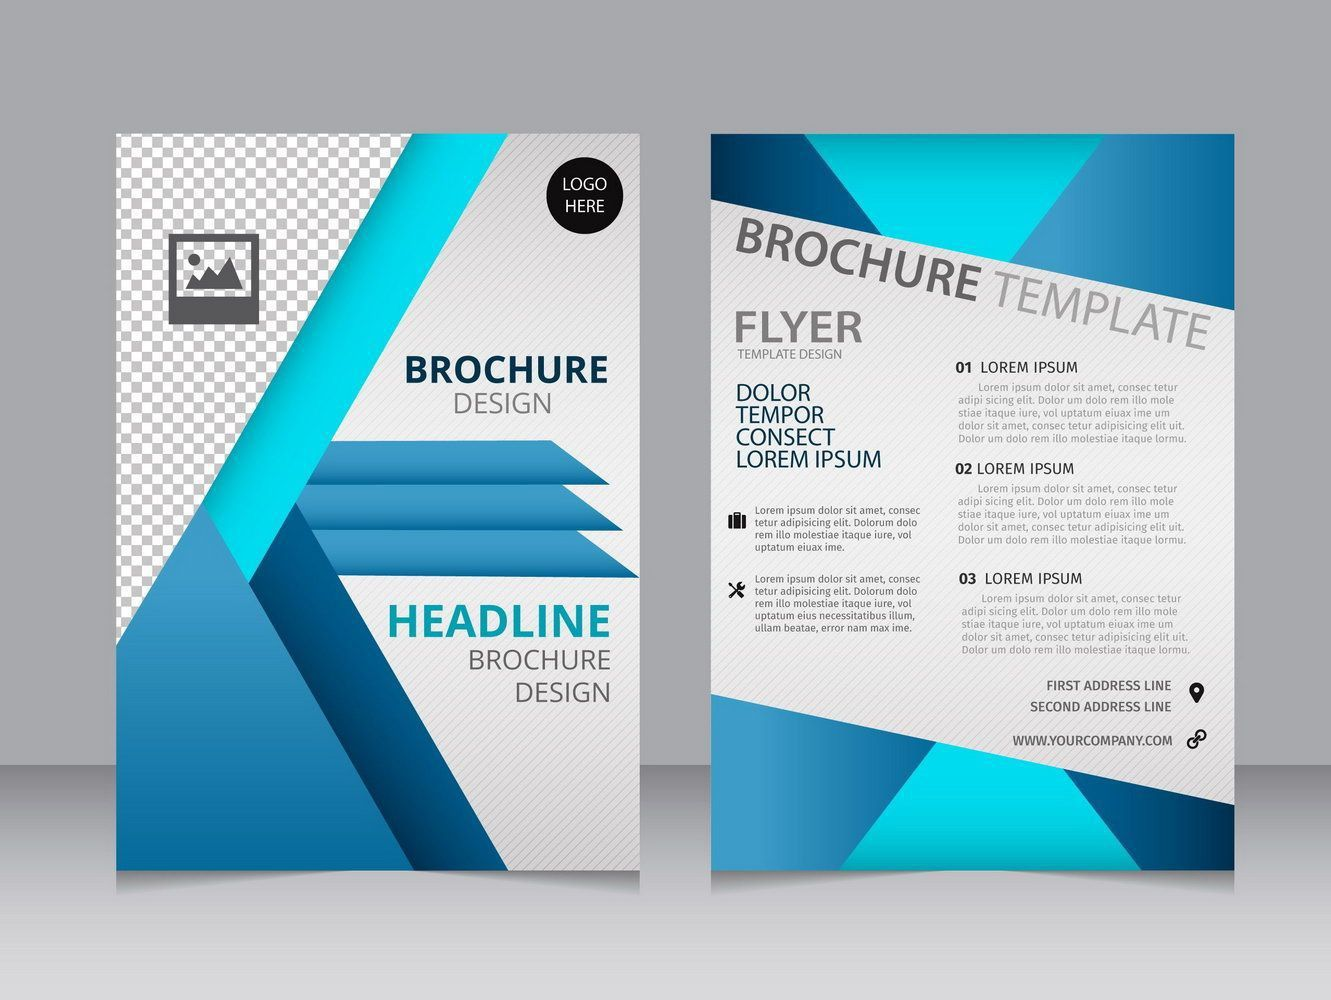 001 Shocking Free Newsletter Template For Word 2010 High Resolution Full